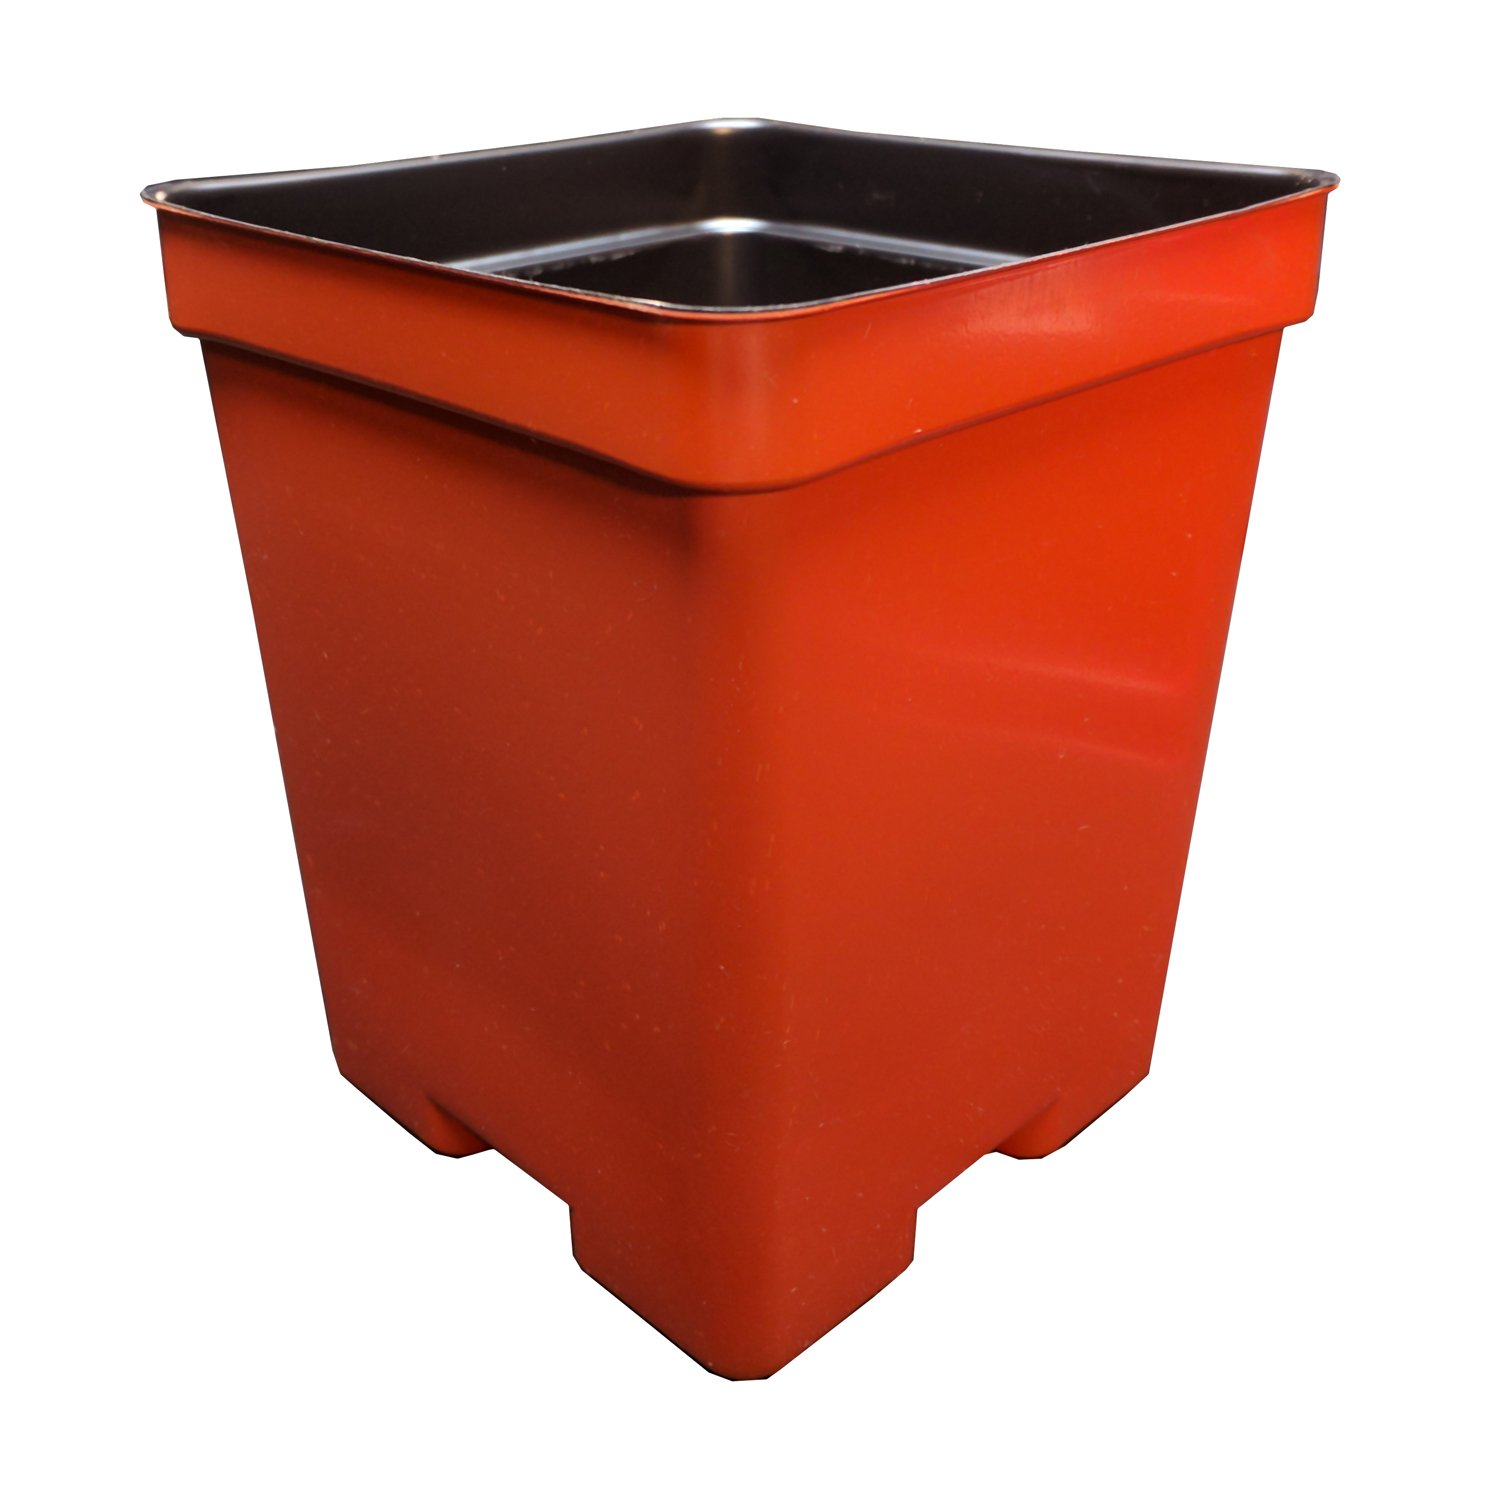 4.5'' Square Deep Press Fit Plastic Flower Pots - Made in the USA - Reusable, Recyclable - Garden, Greenhouse, Hydroponics, Seed Starting (Actual Dimensions 4.125'' Square by 5'' Deep) (375, Terracotta)